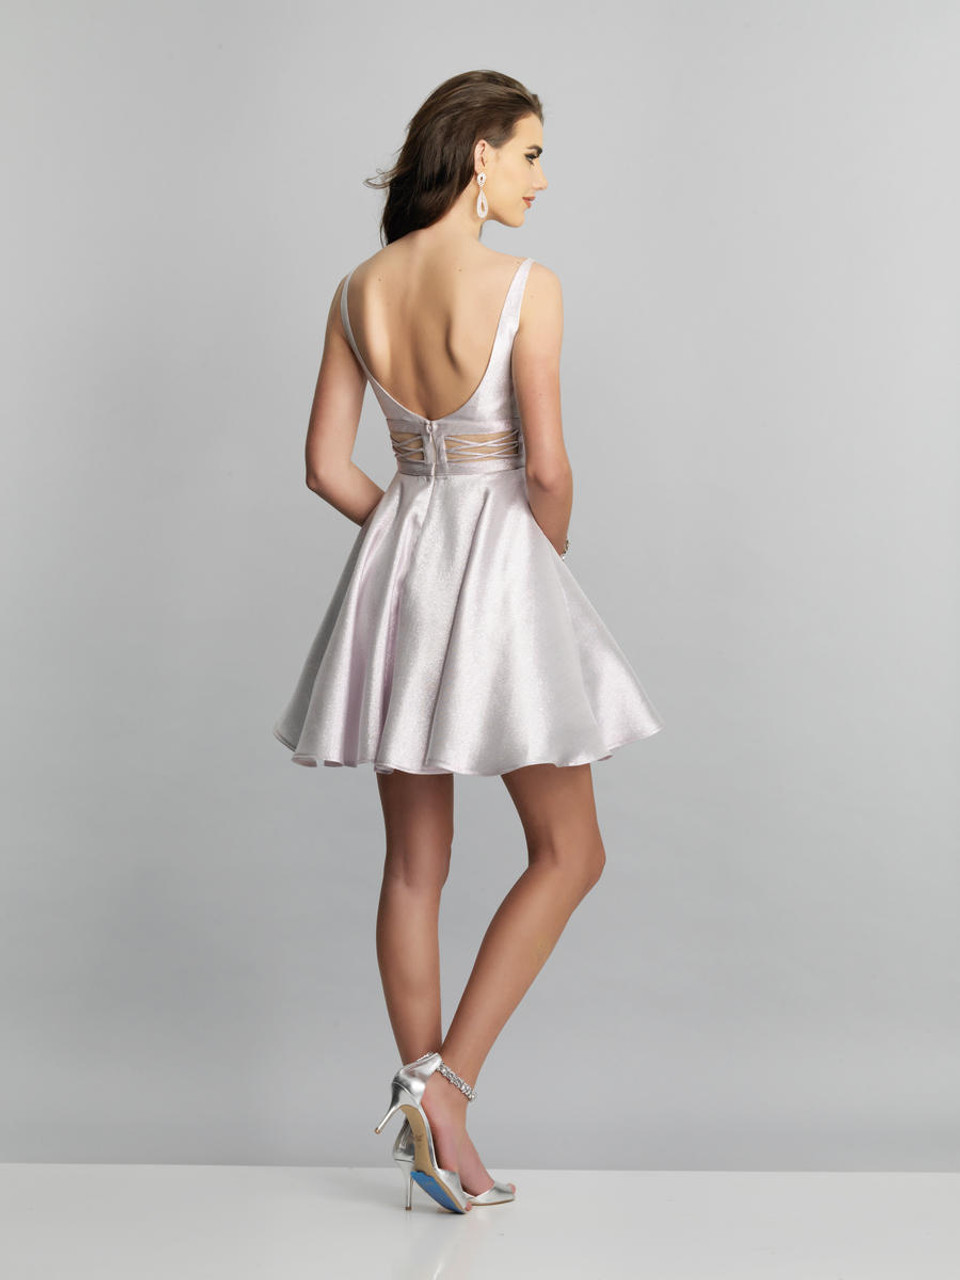 Dave & Johnny A8454 Sweetheart A-line Short Dress